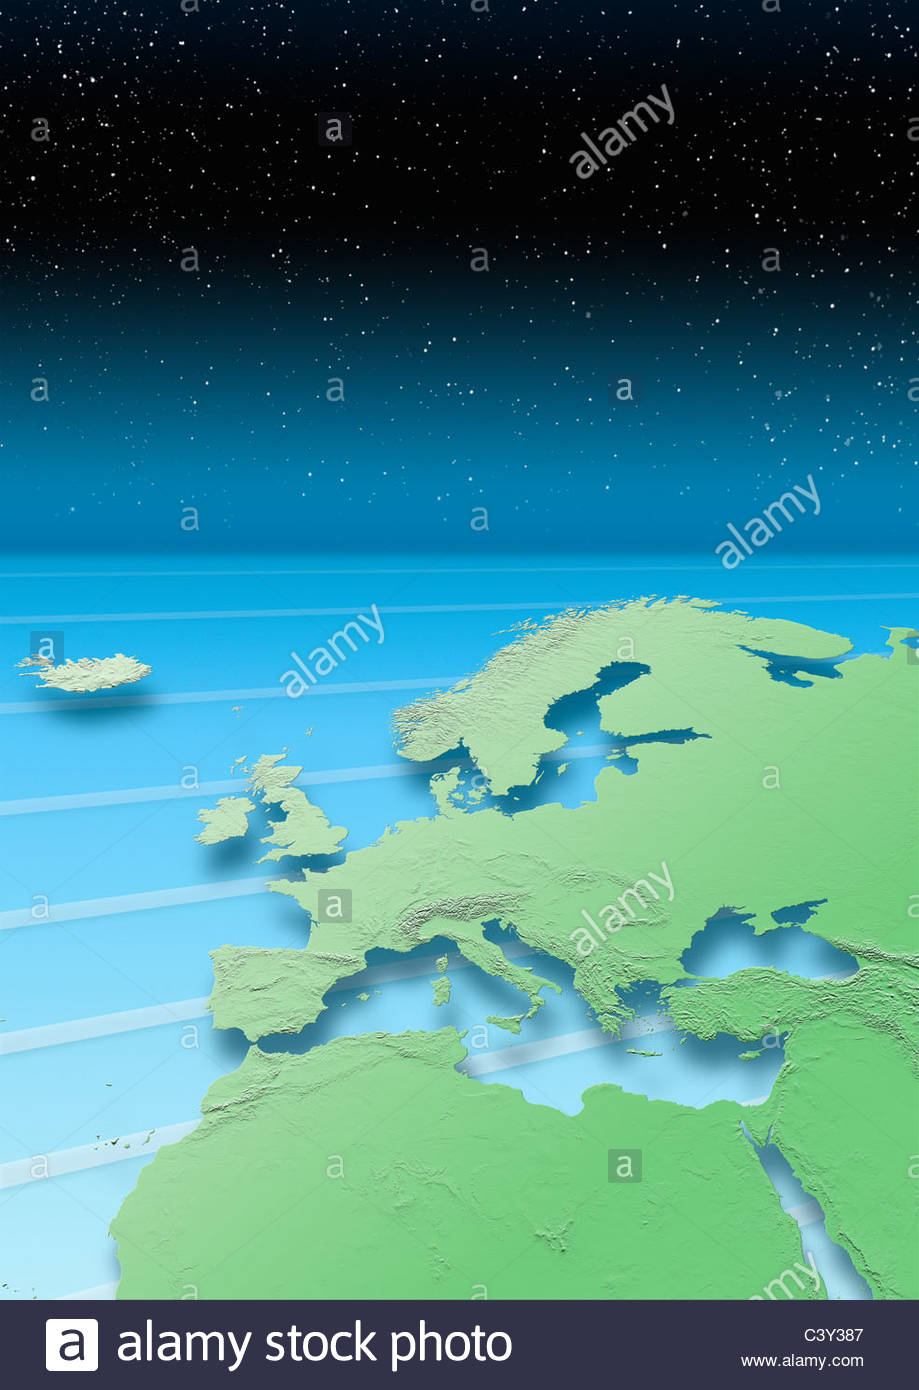 map, Western Europe, green, blue, stars, night sky, relief map - Stock Image